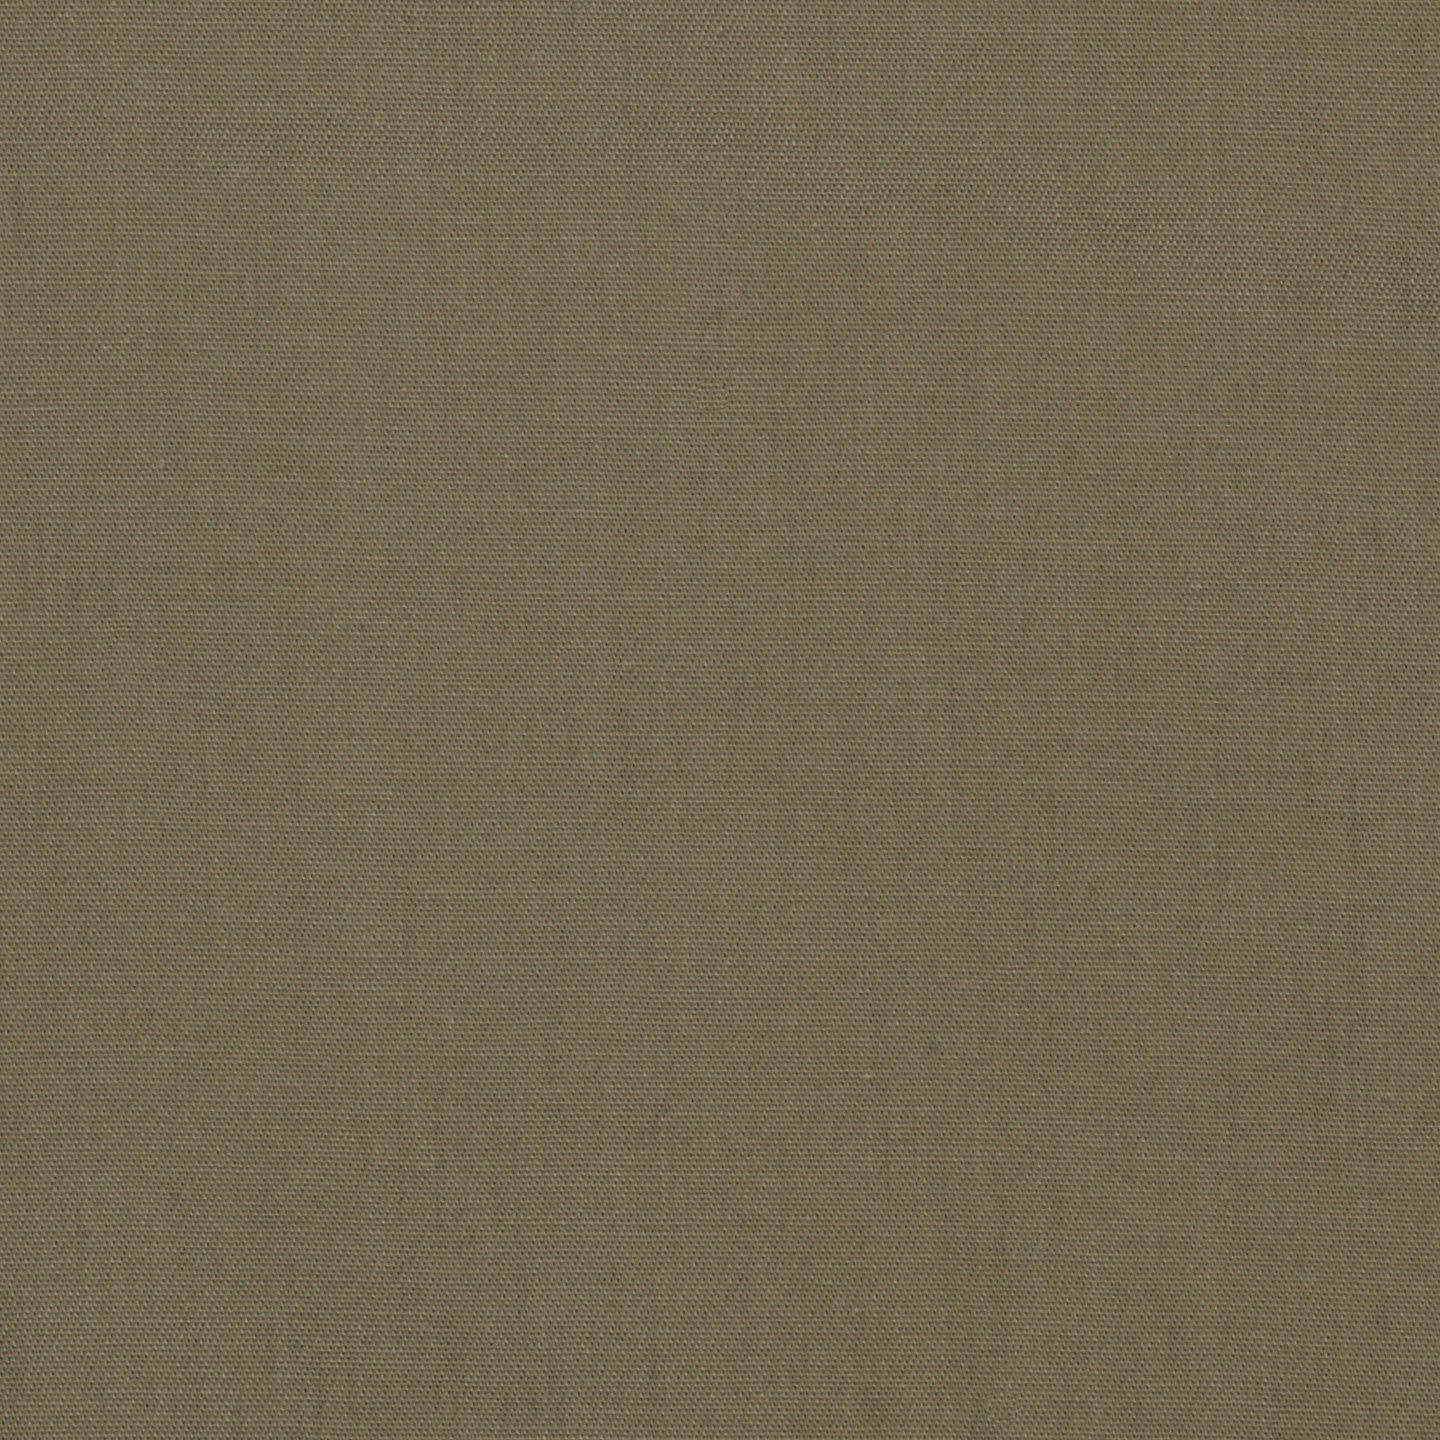 Micro French Twill Khaki